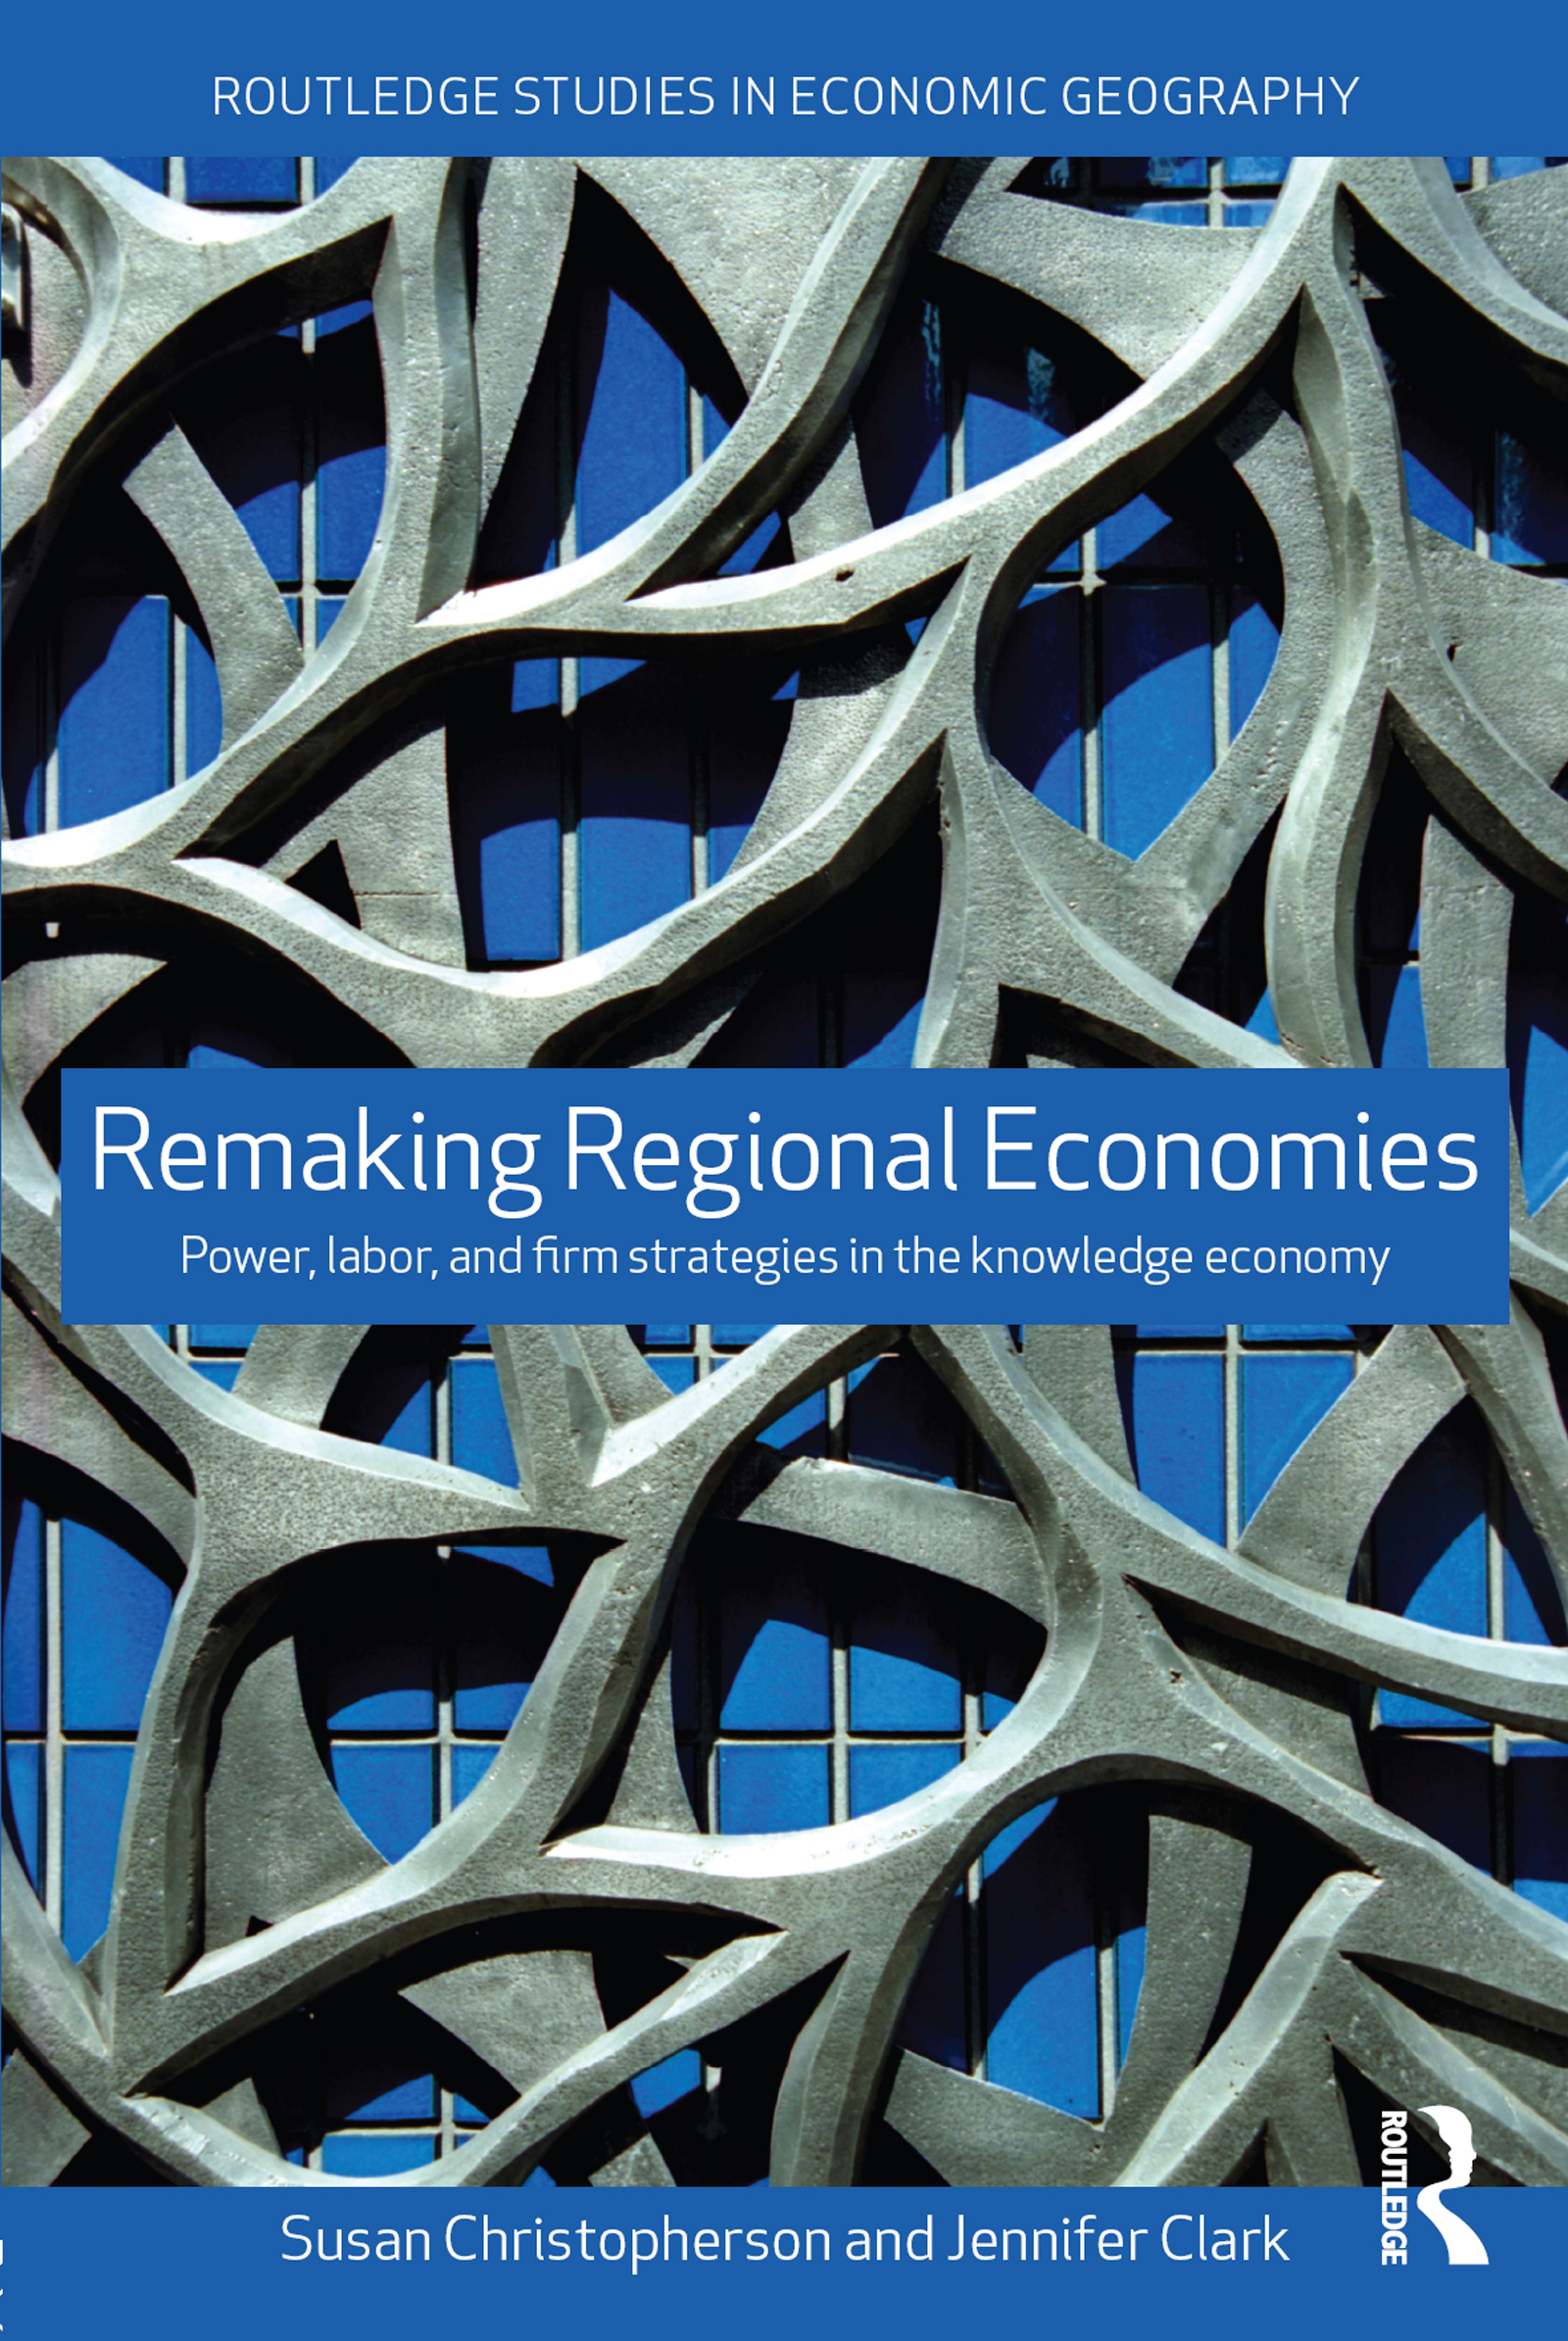 Labor markets and the regional project